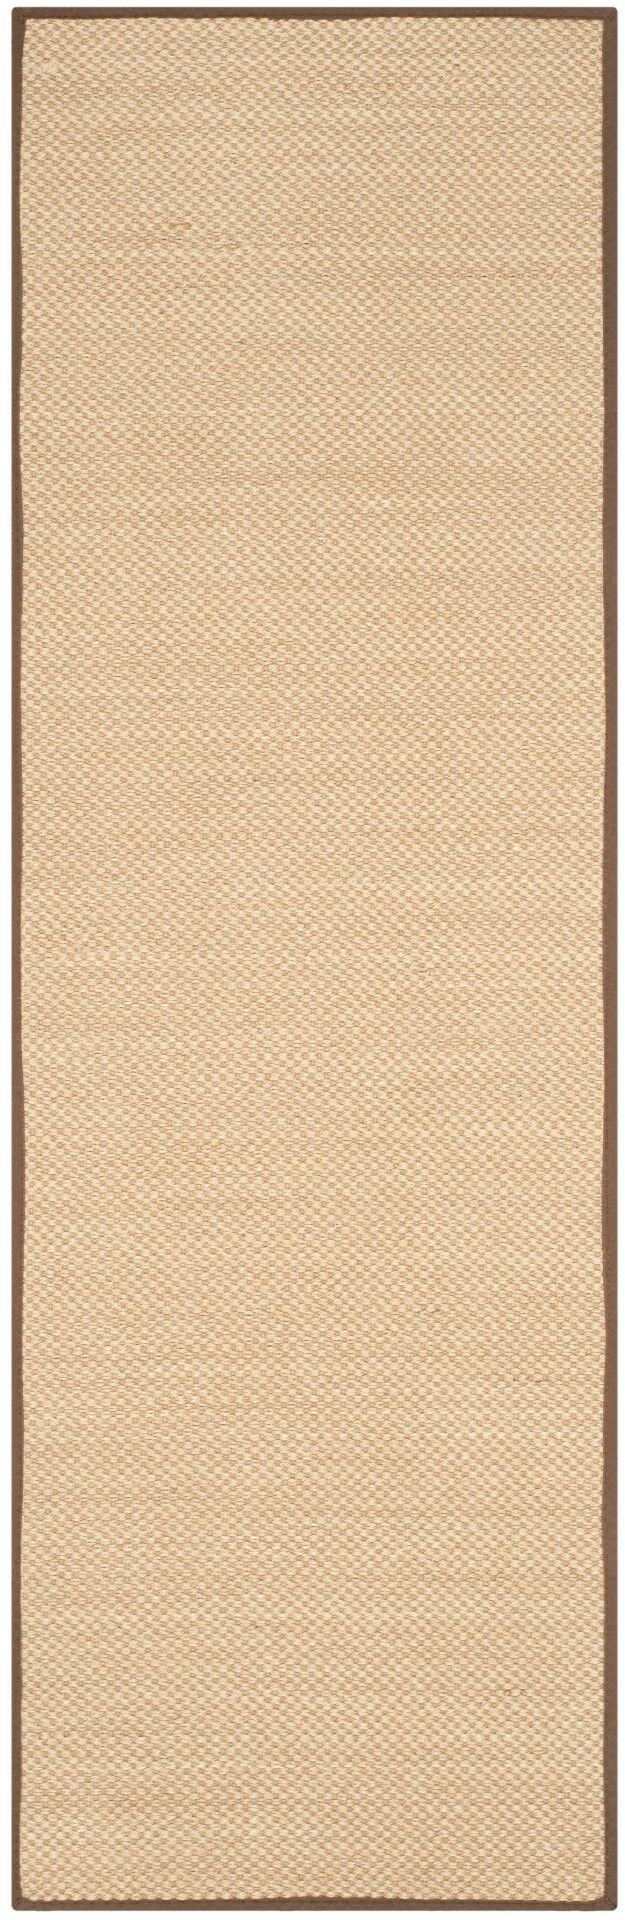 Hillsborough Maize / Brown Area Rug Rug Size: Runner 2'6